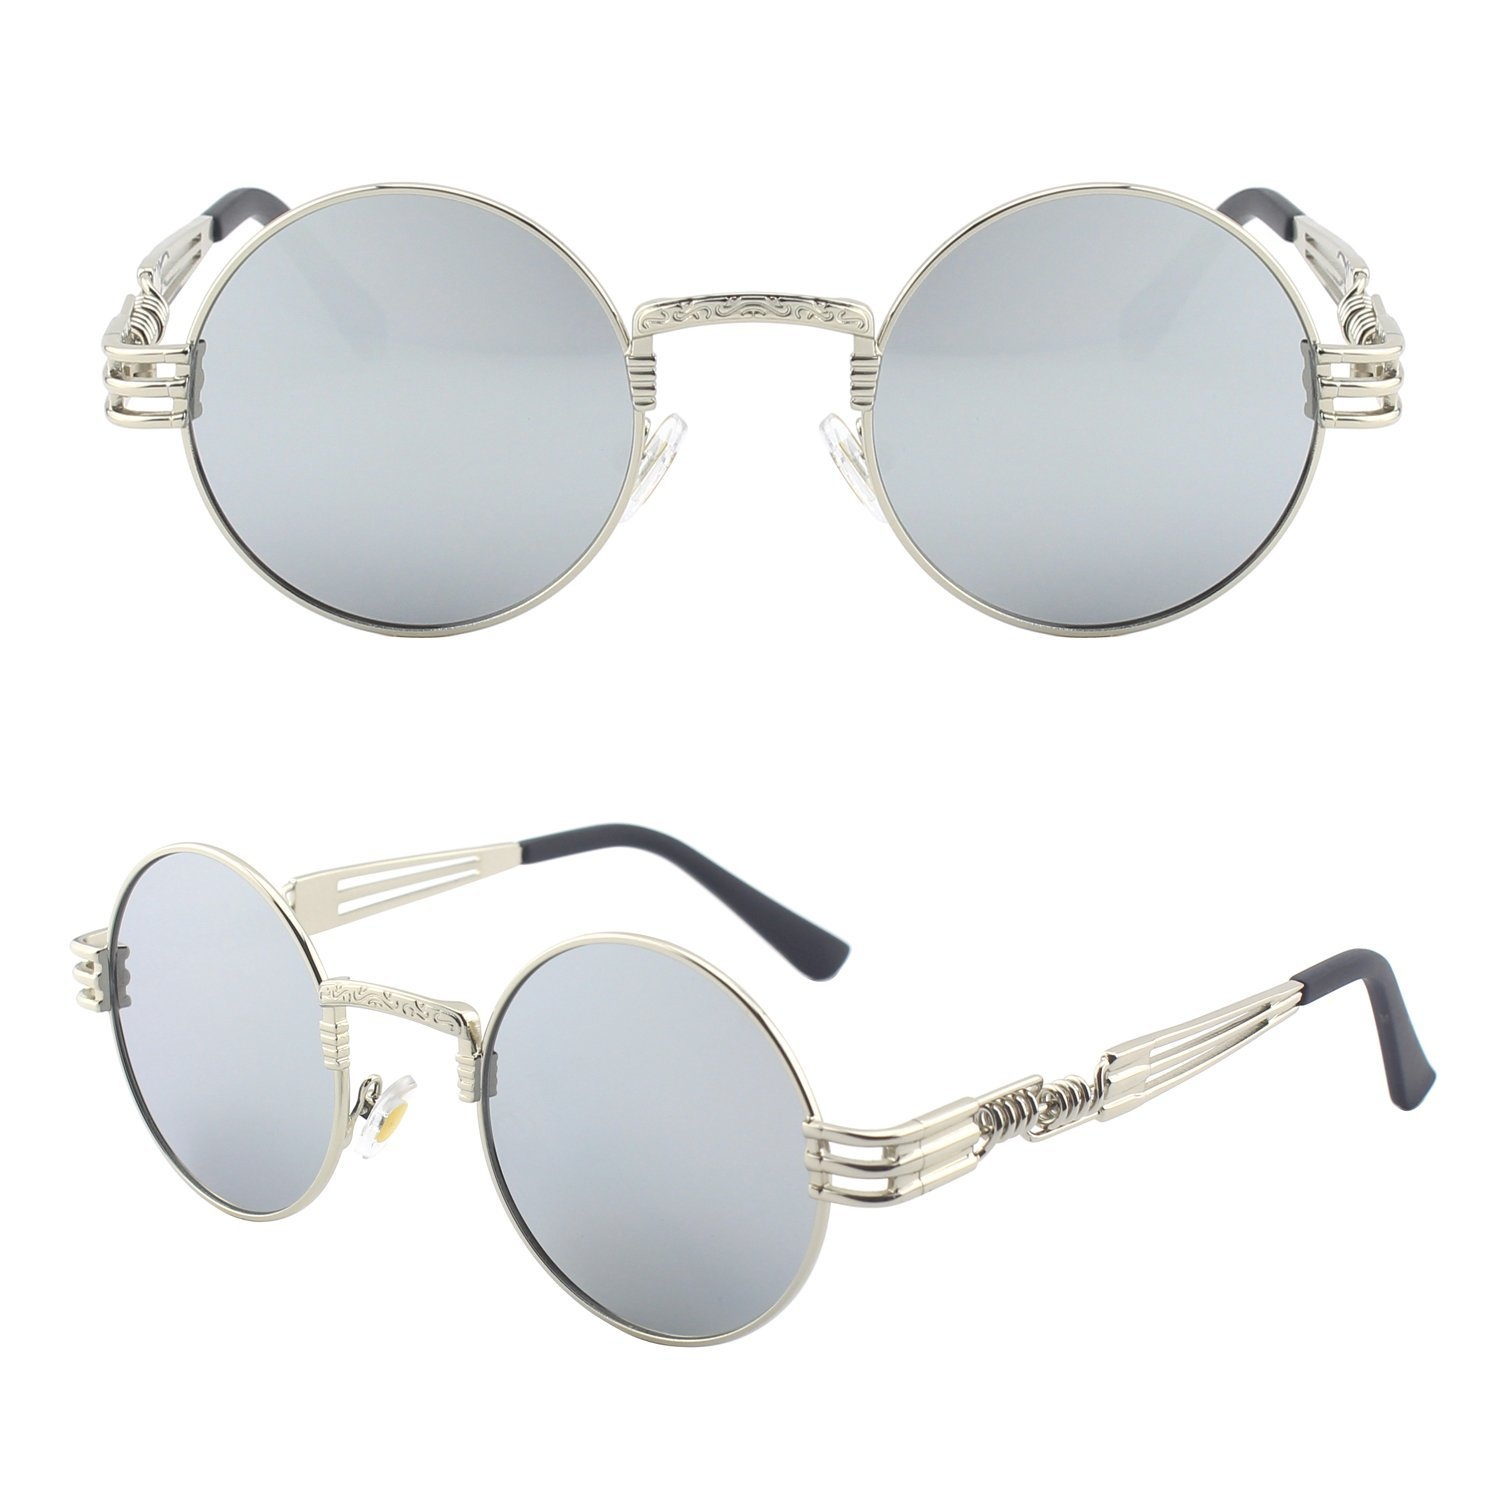 7f9ca09d06b Round Sunglasses Sunglasses  Buy Online from Fishpond.co.nz